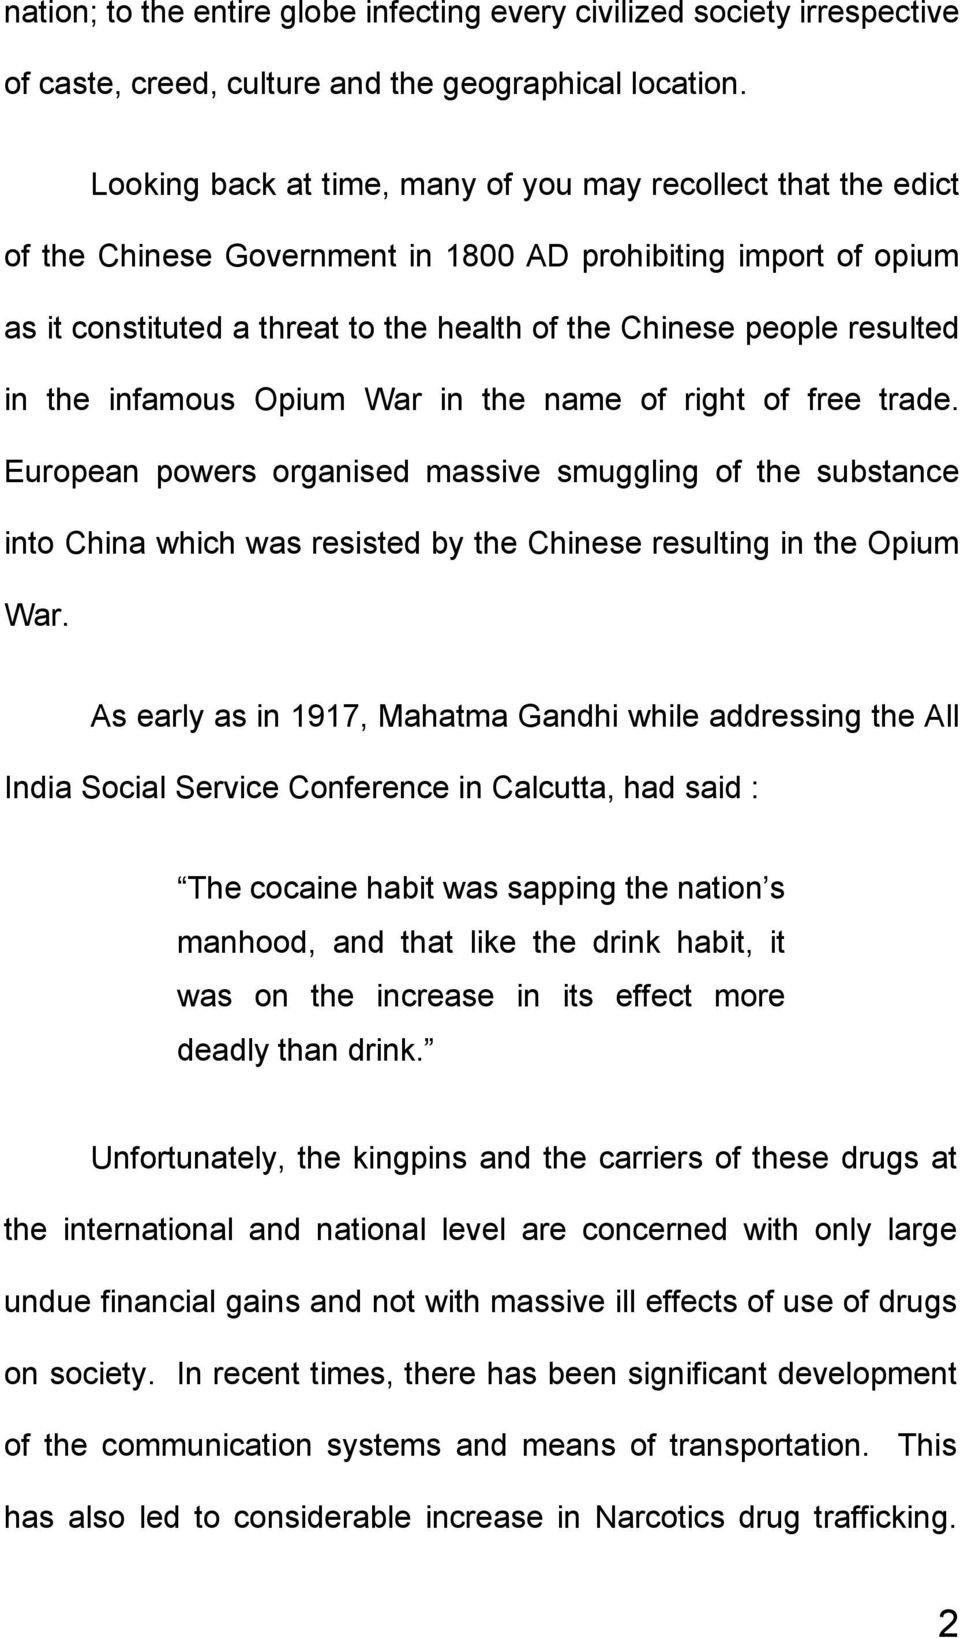 in the infamous Opium War in the name of right of free trade. European powers organised massive smuggling of the substance into China which was resisted by the Chinese resulting in the Opium War.